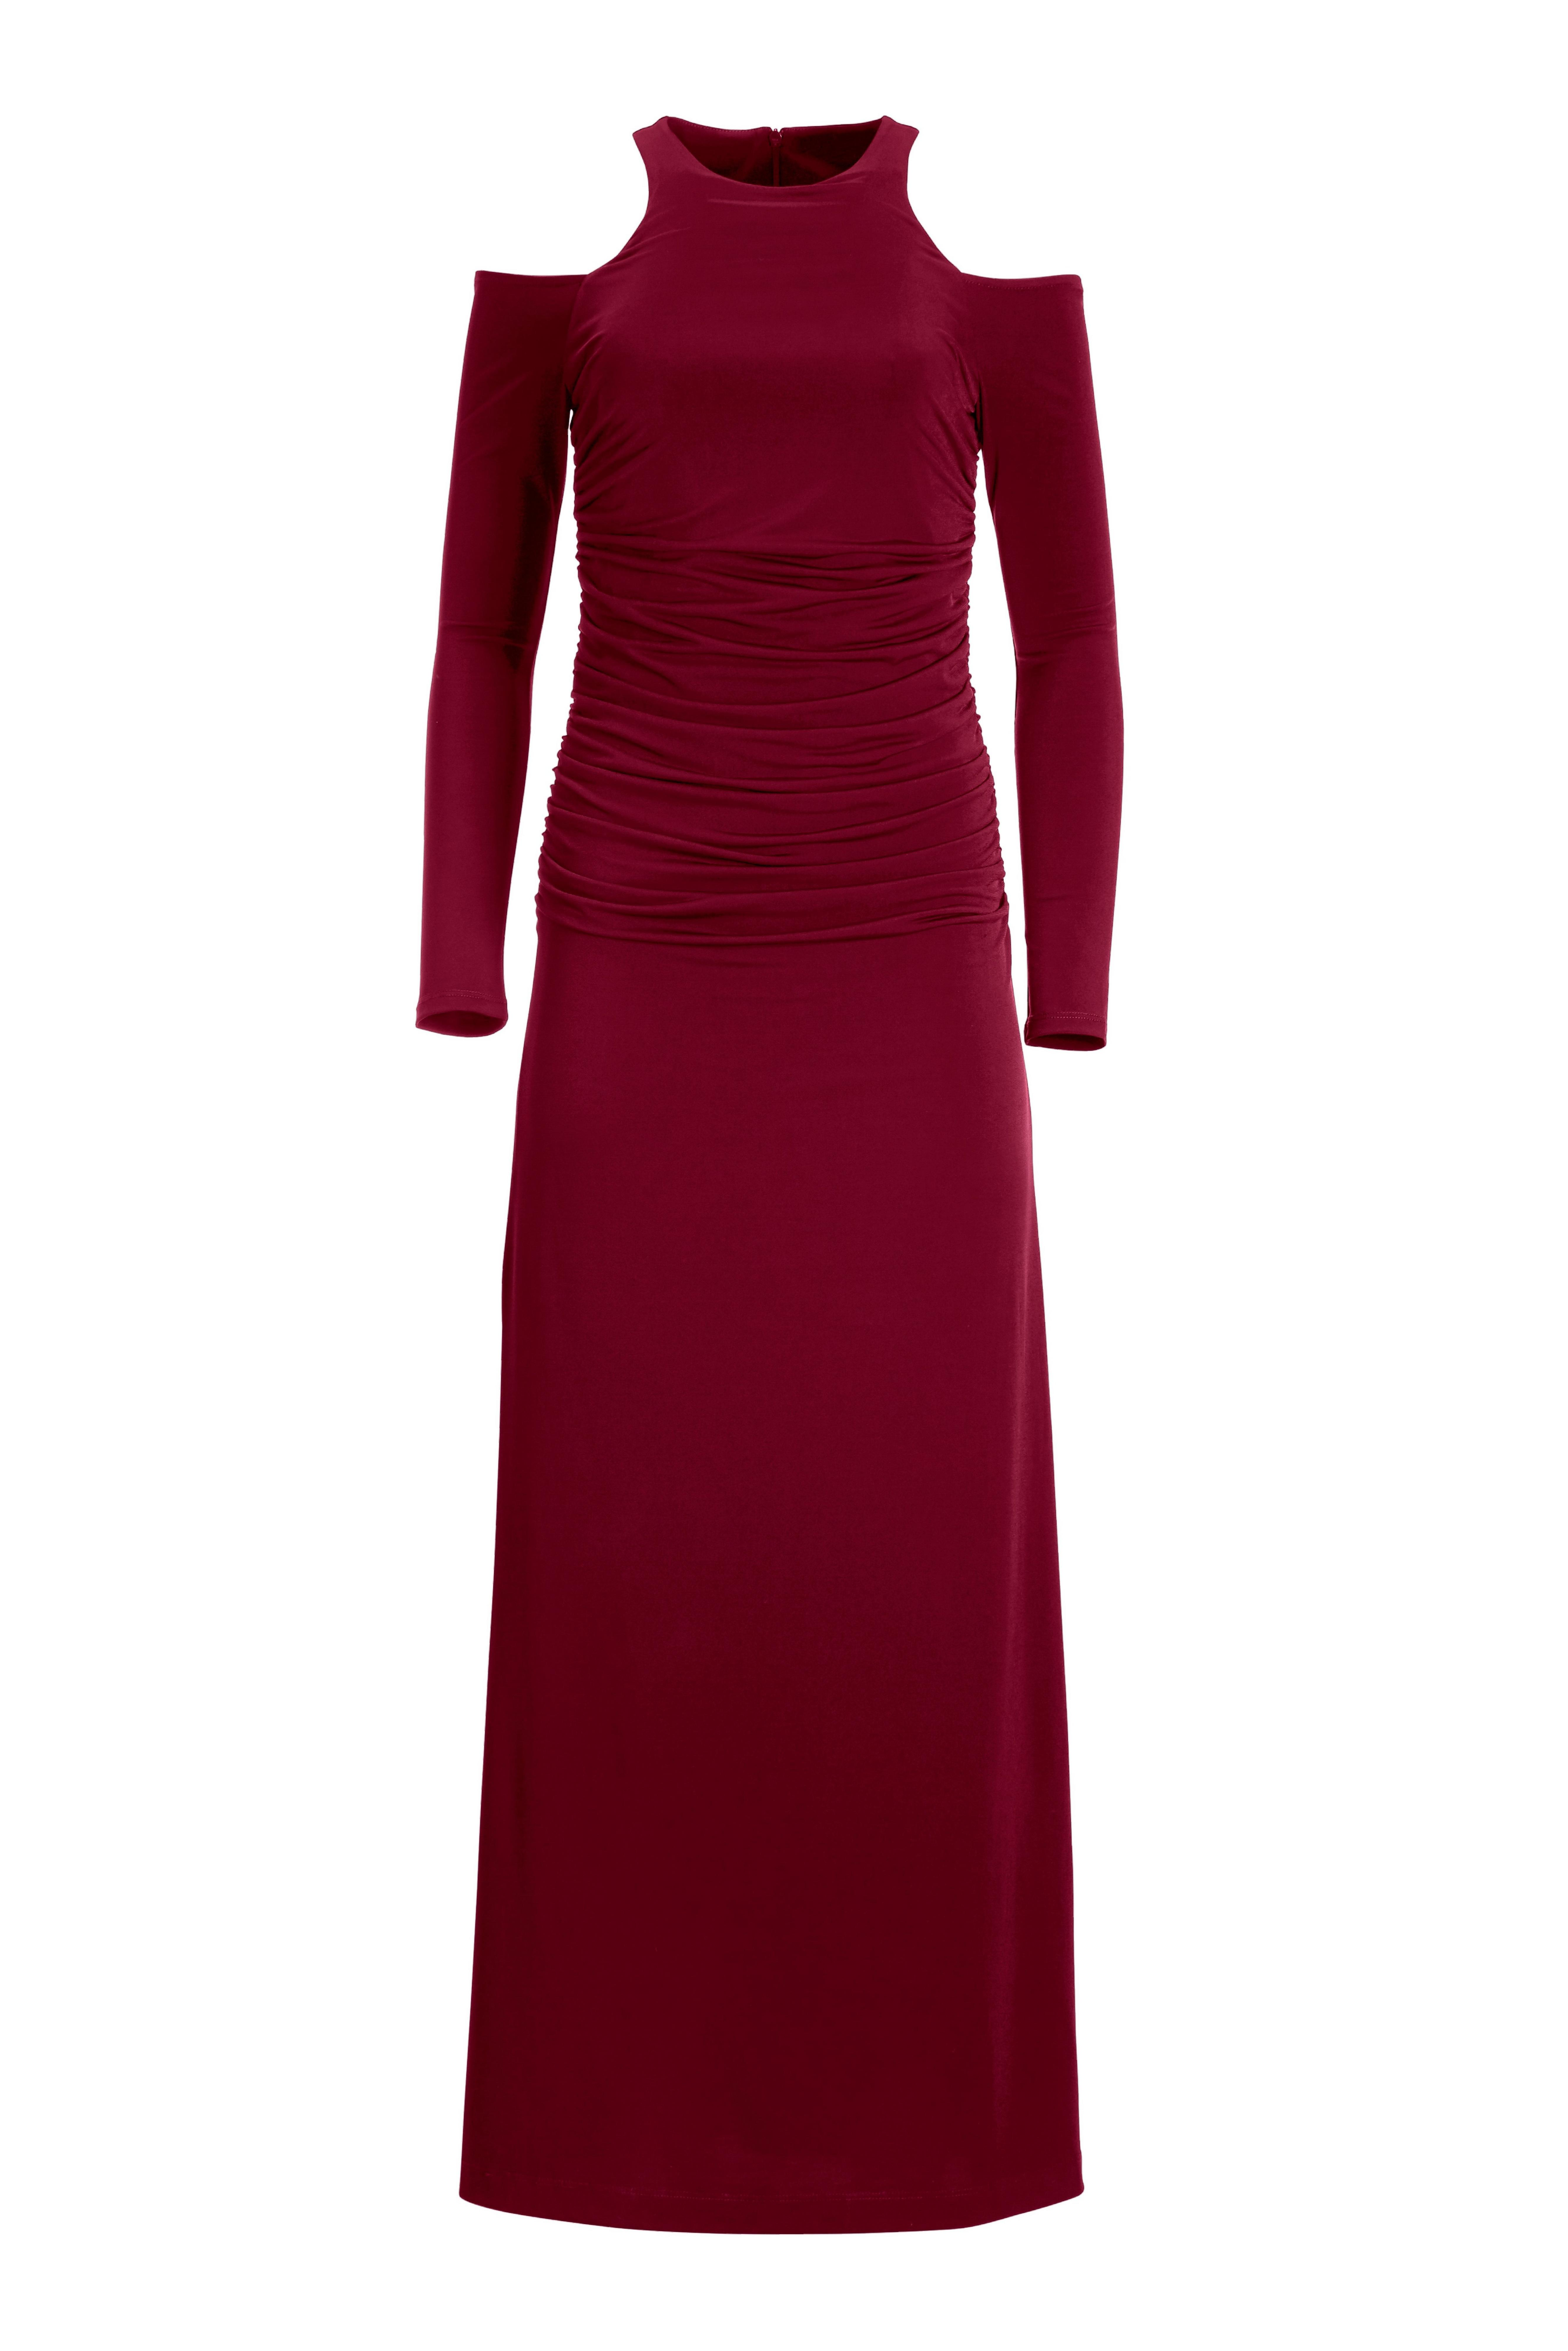 high-neck cold-shoulder long sleeve maxi dress in wine.